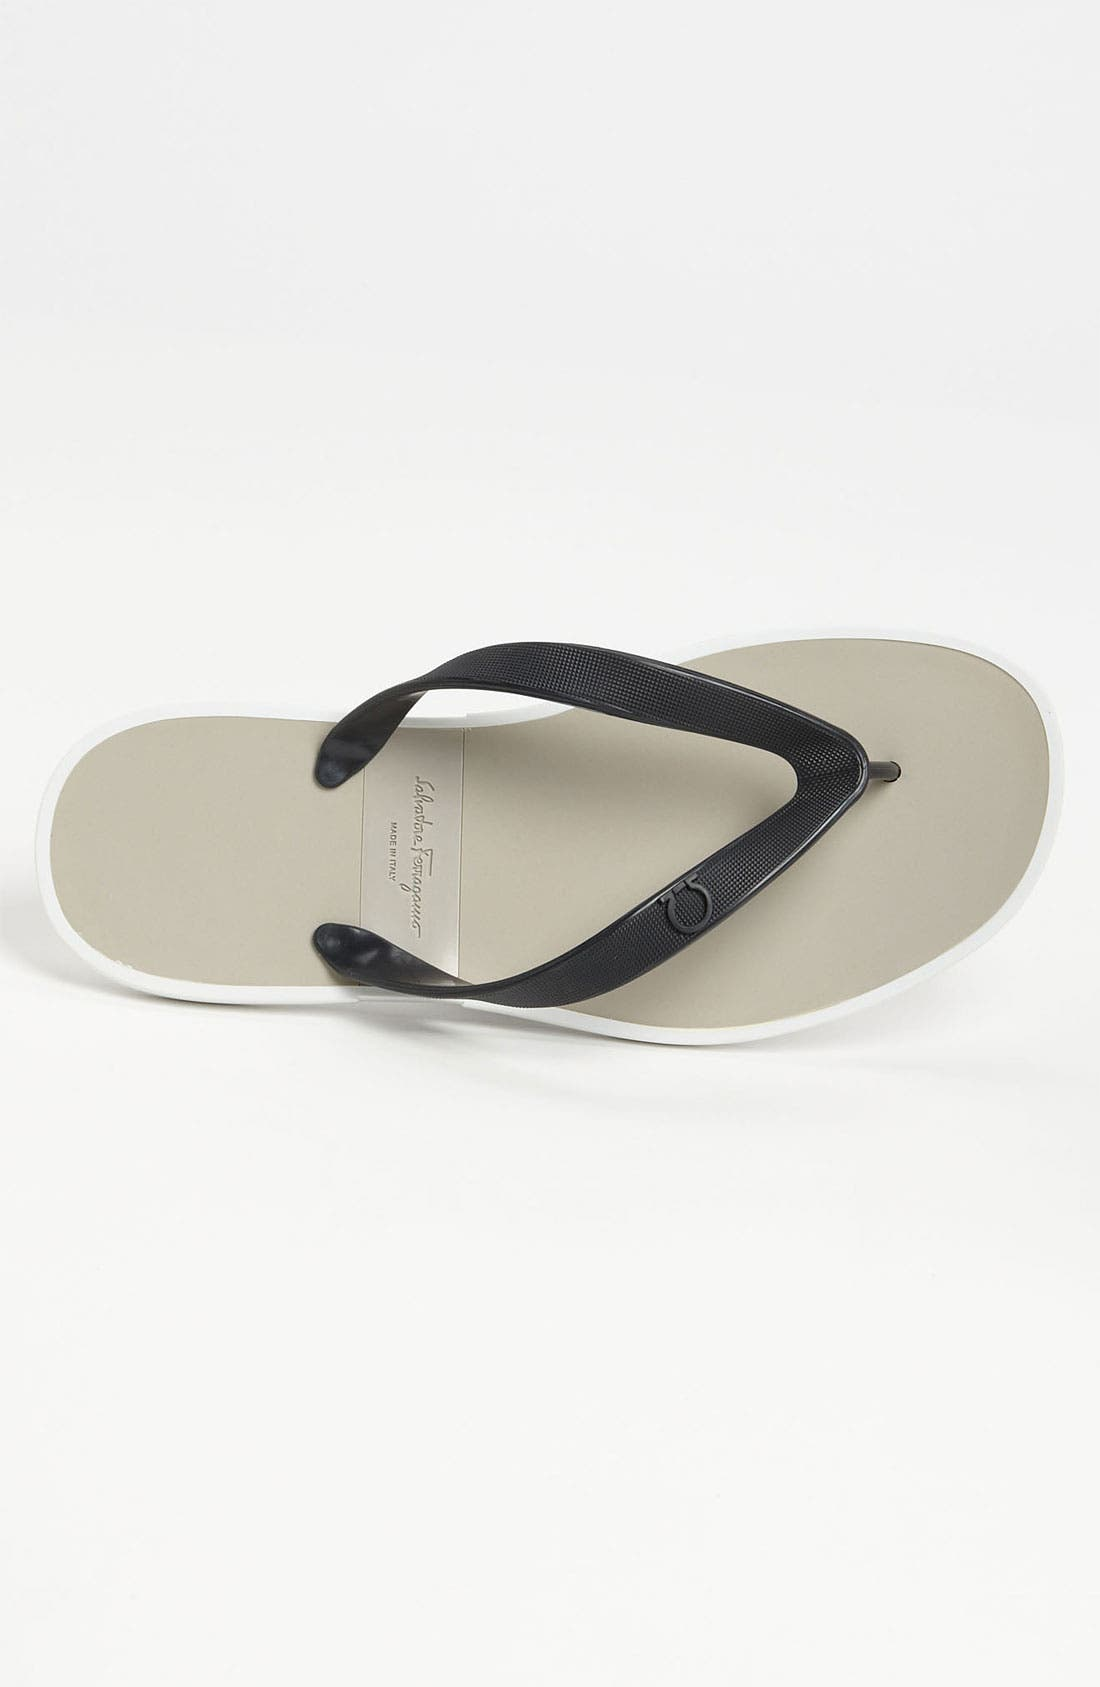 Alternate Image 3  - Salvatore Ferragamo 'Gym' Flip Flop